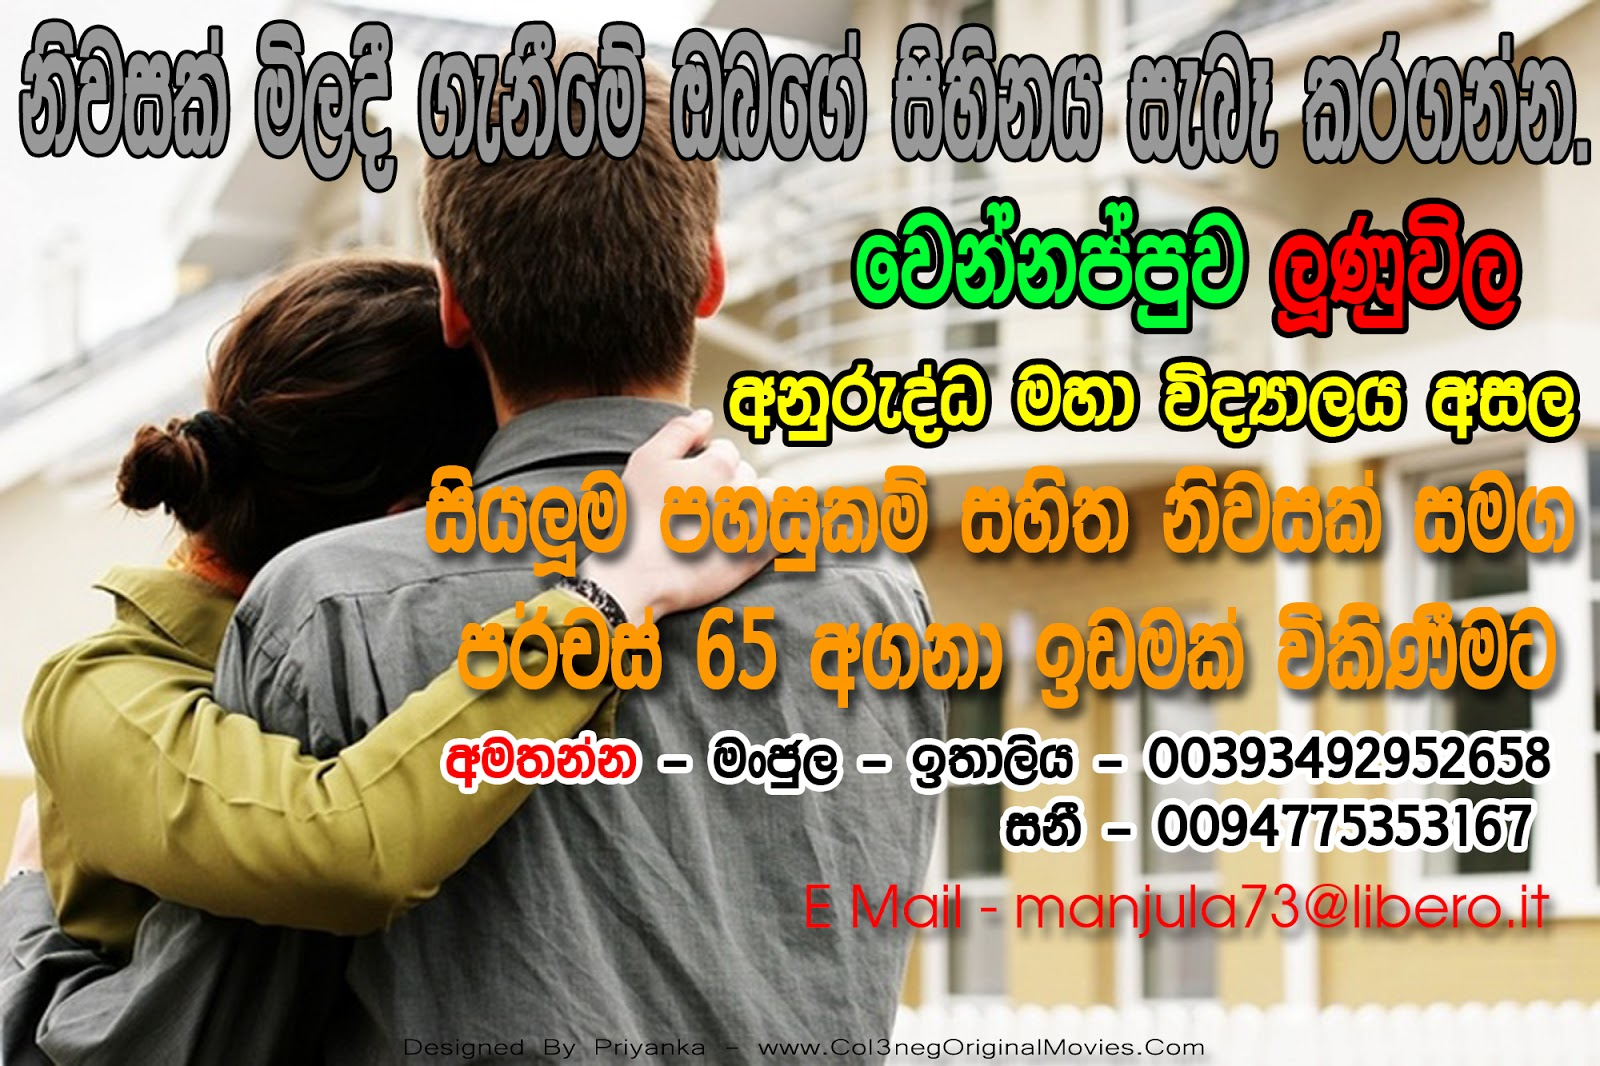 Wennappuwa House And Land Sale | House And Land Sale